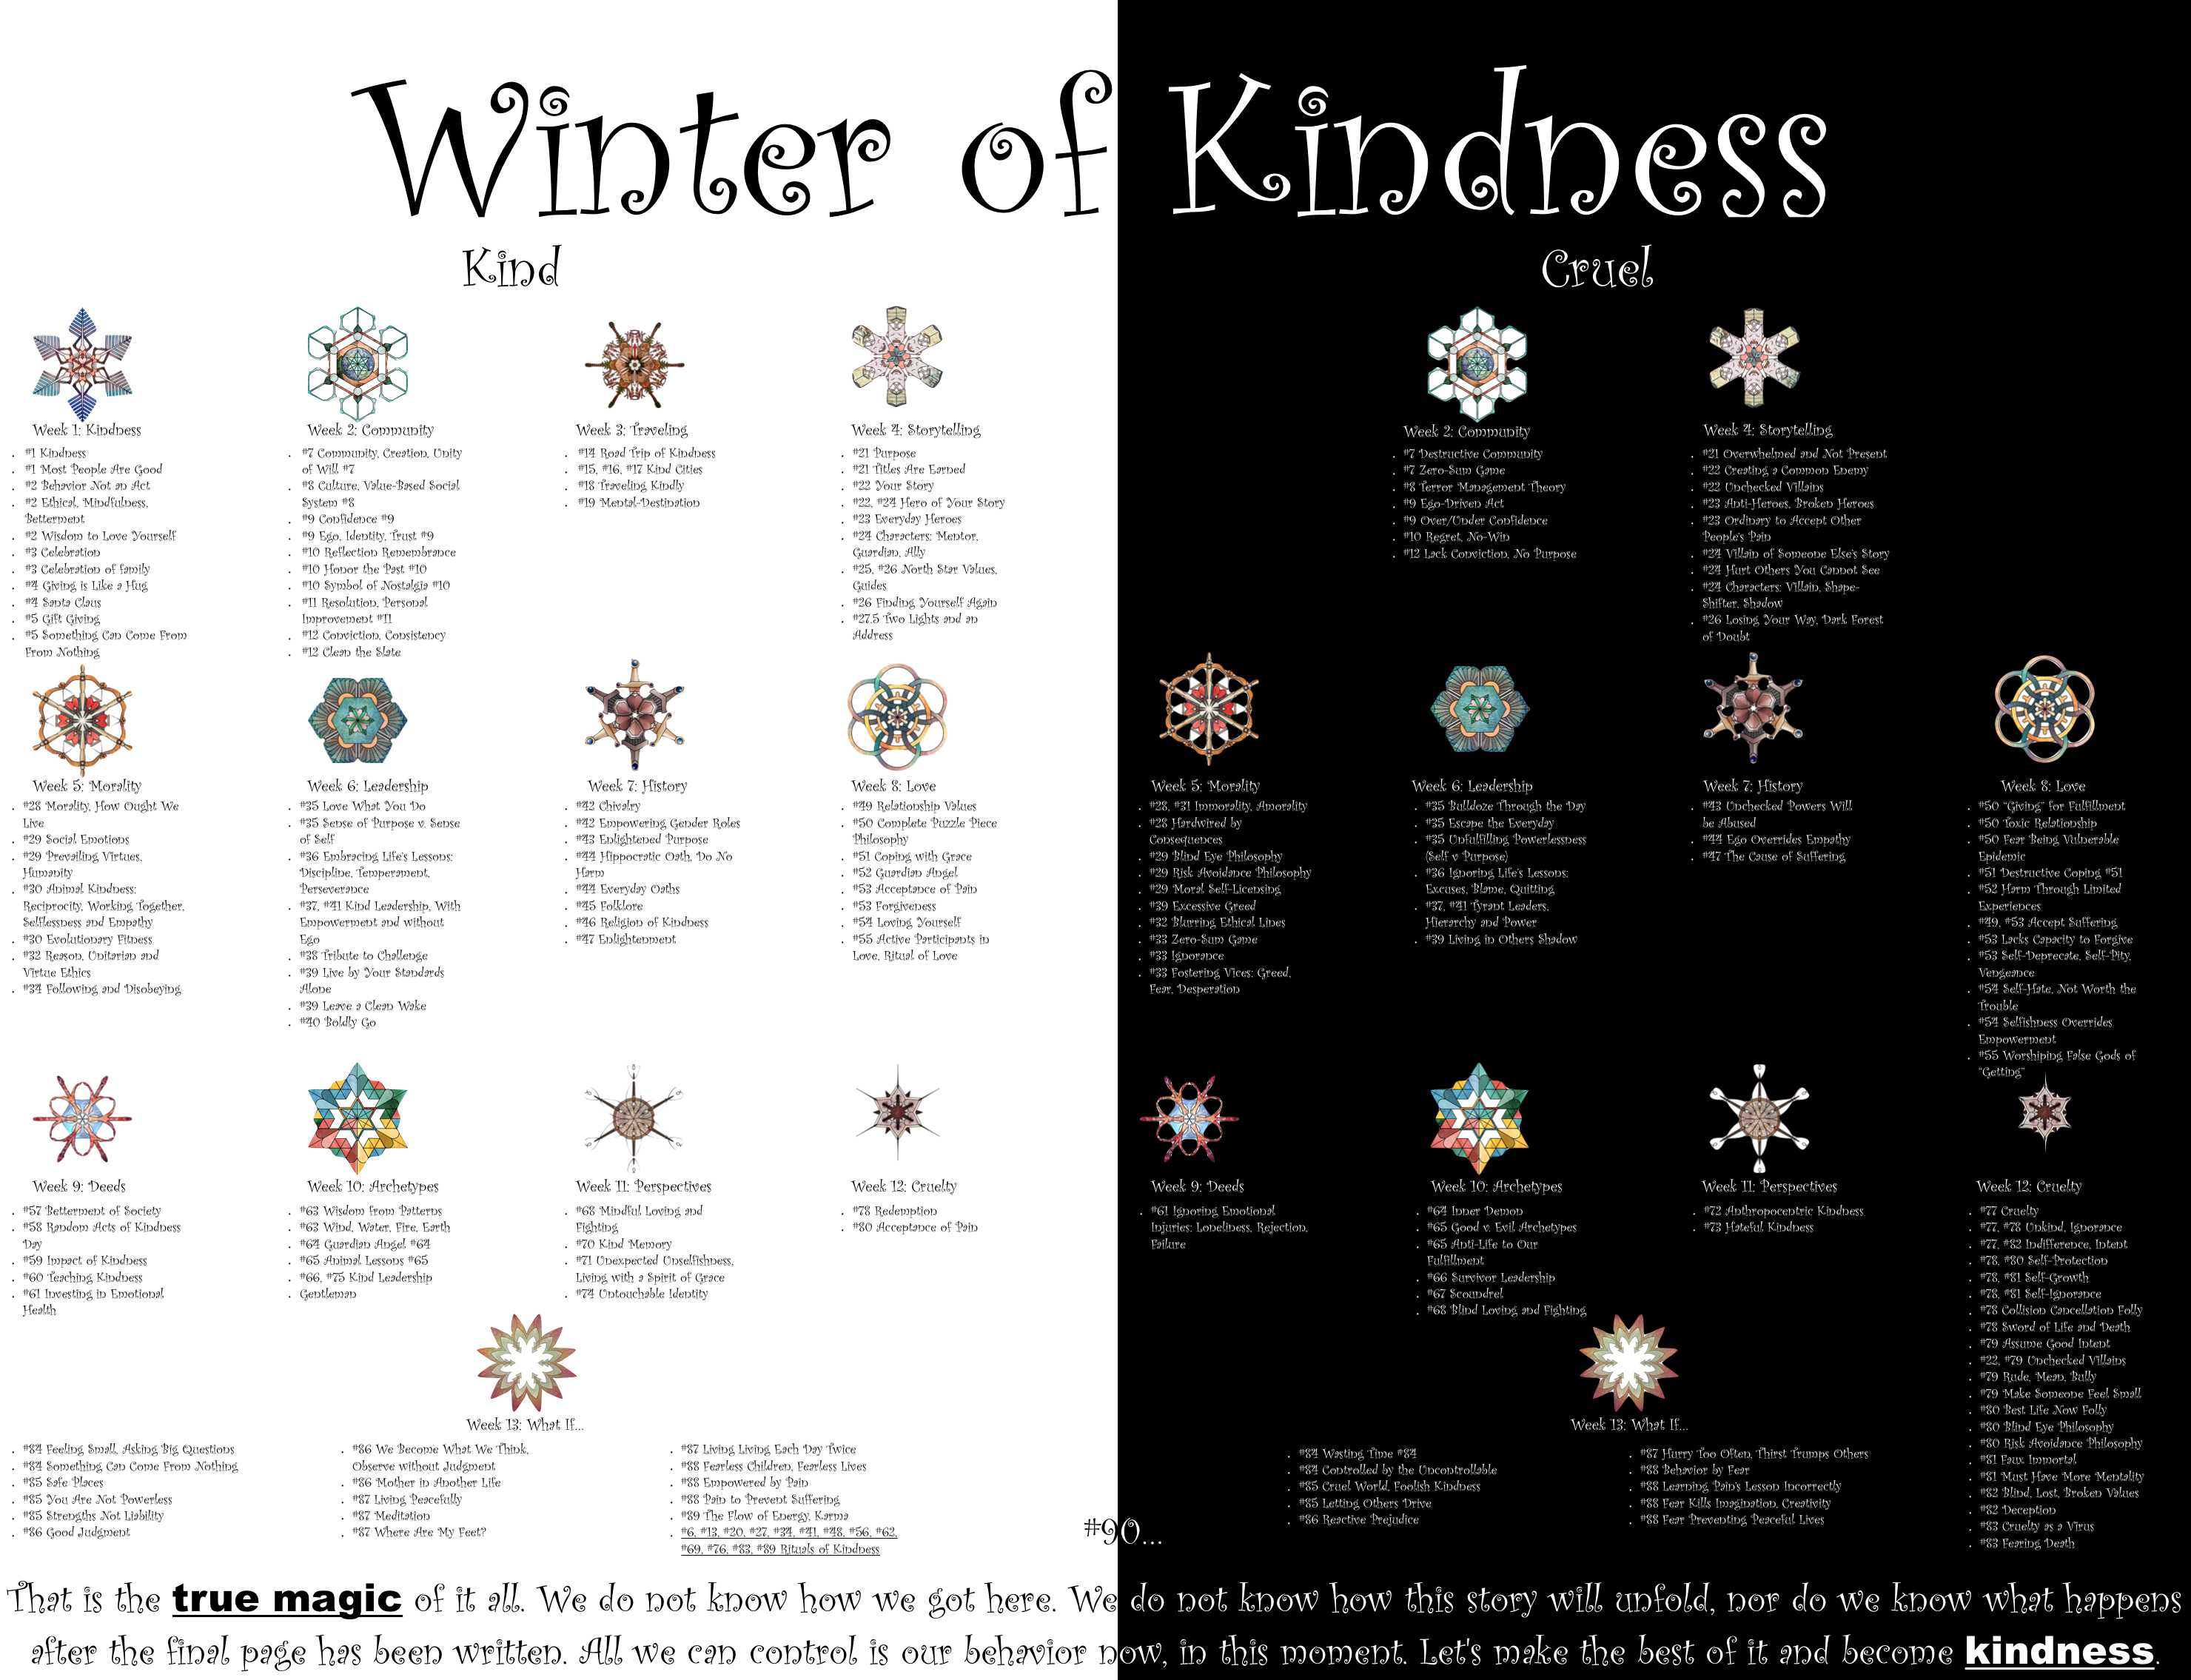 Winter of Kindness Philosophy - Image